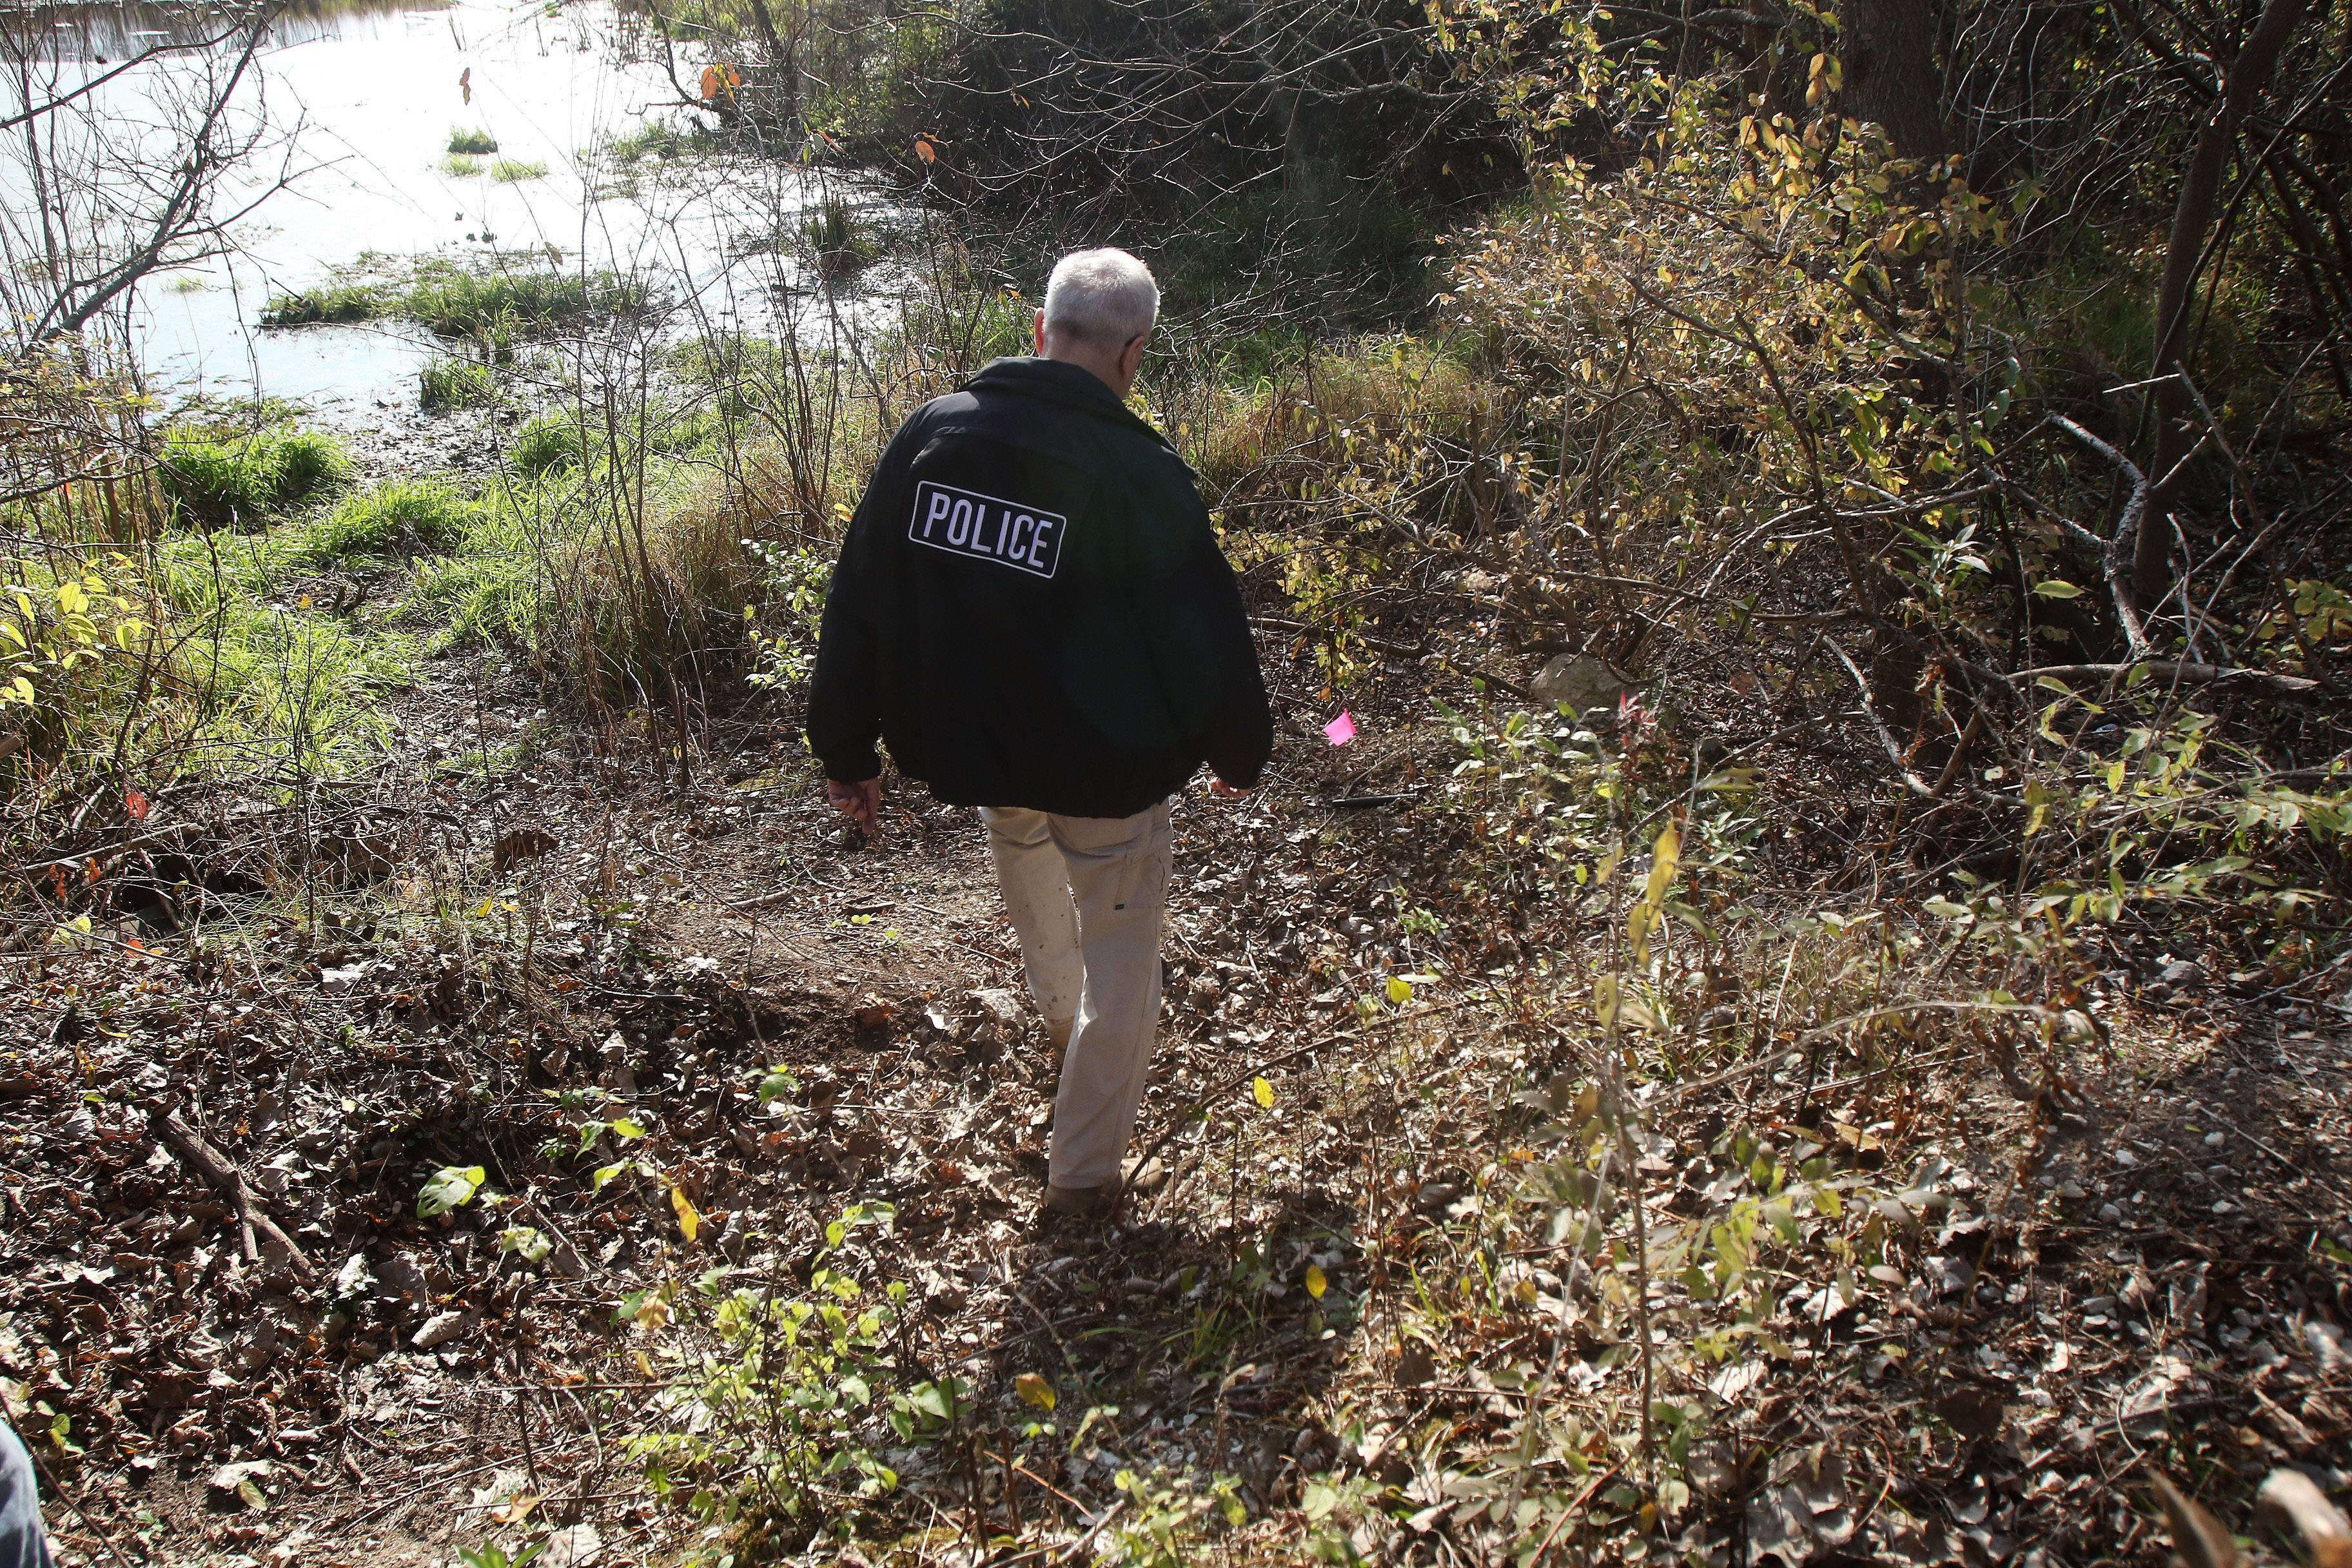 Lake County Major Crimes Task Force Cmdr. George Filenko retraces the footsteps of Fox Lake police Lt. Joe Gliniewicz near a pond on the day he staged his suicide. Filenko explained what police officers found as they responded to his call for help and what led to a major manhunt for suspects in the wooded area in Fox Lake.